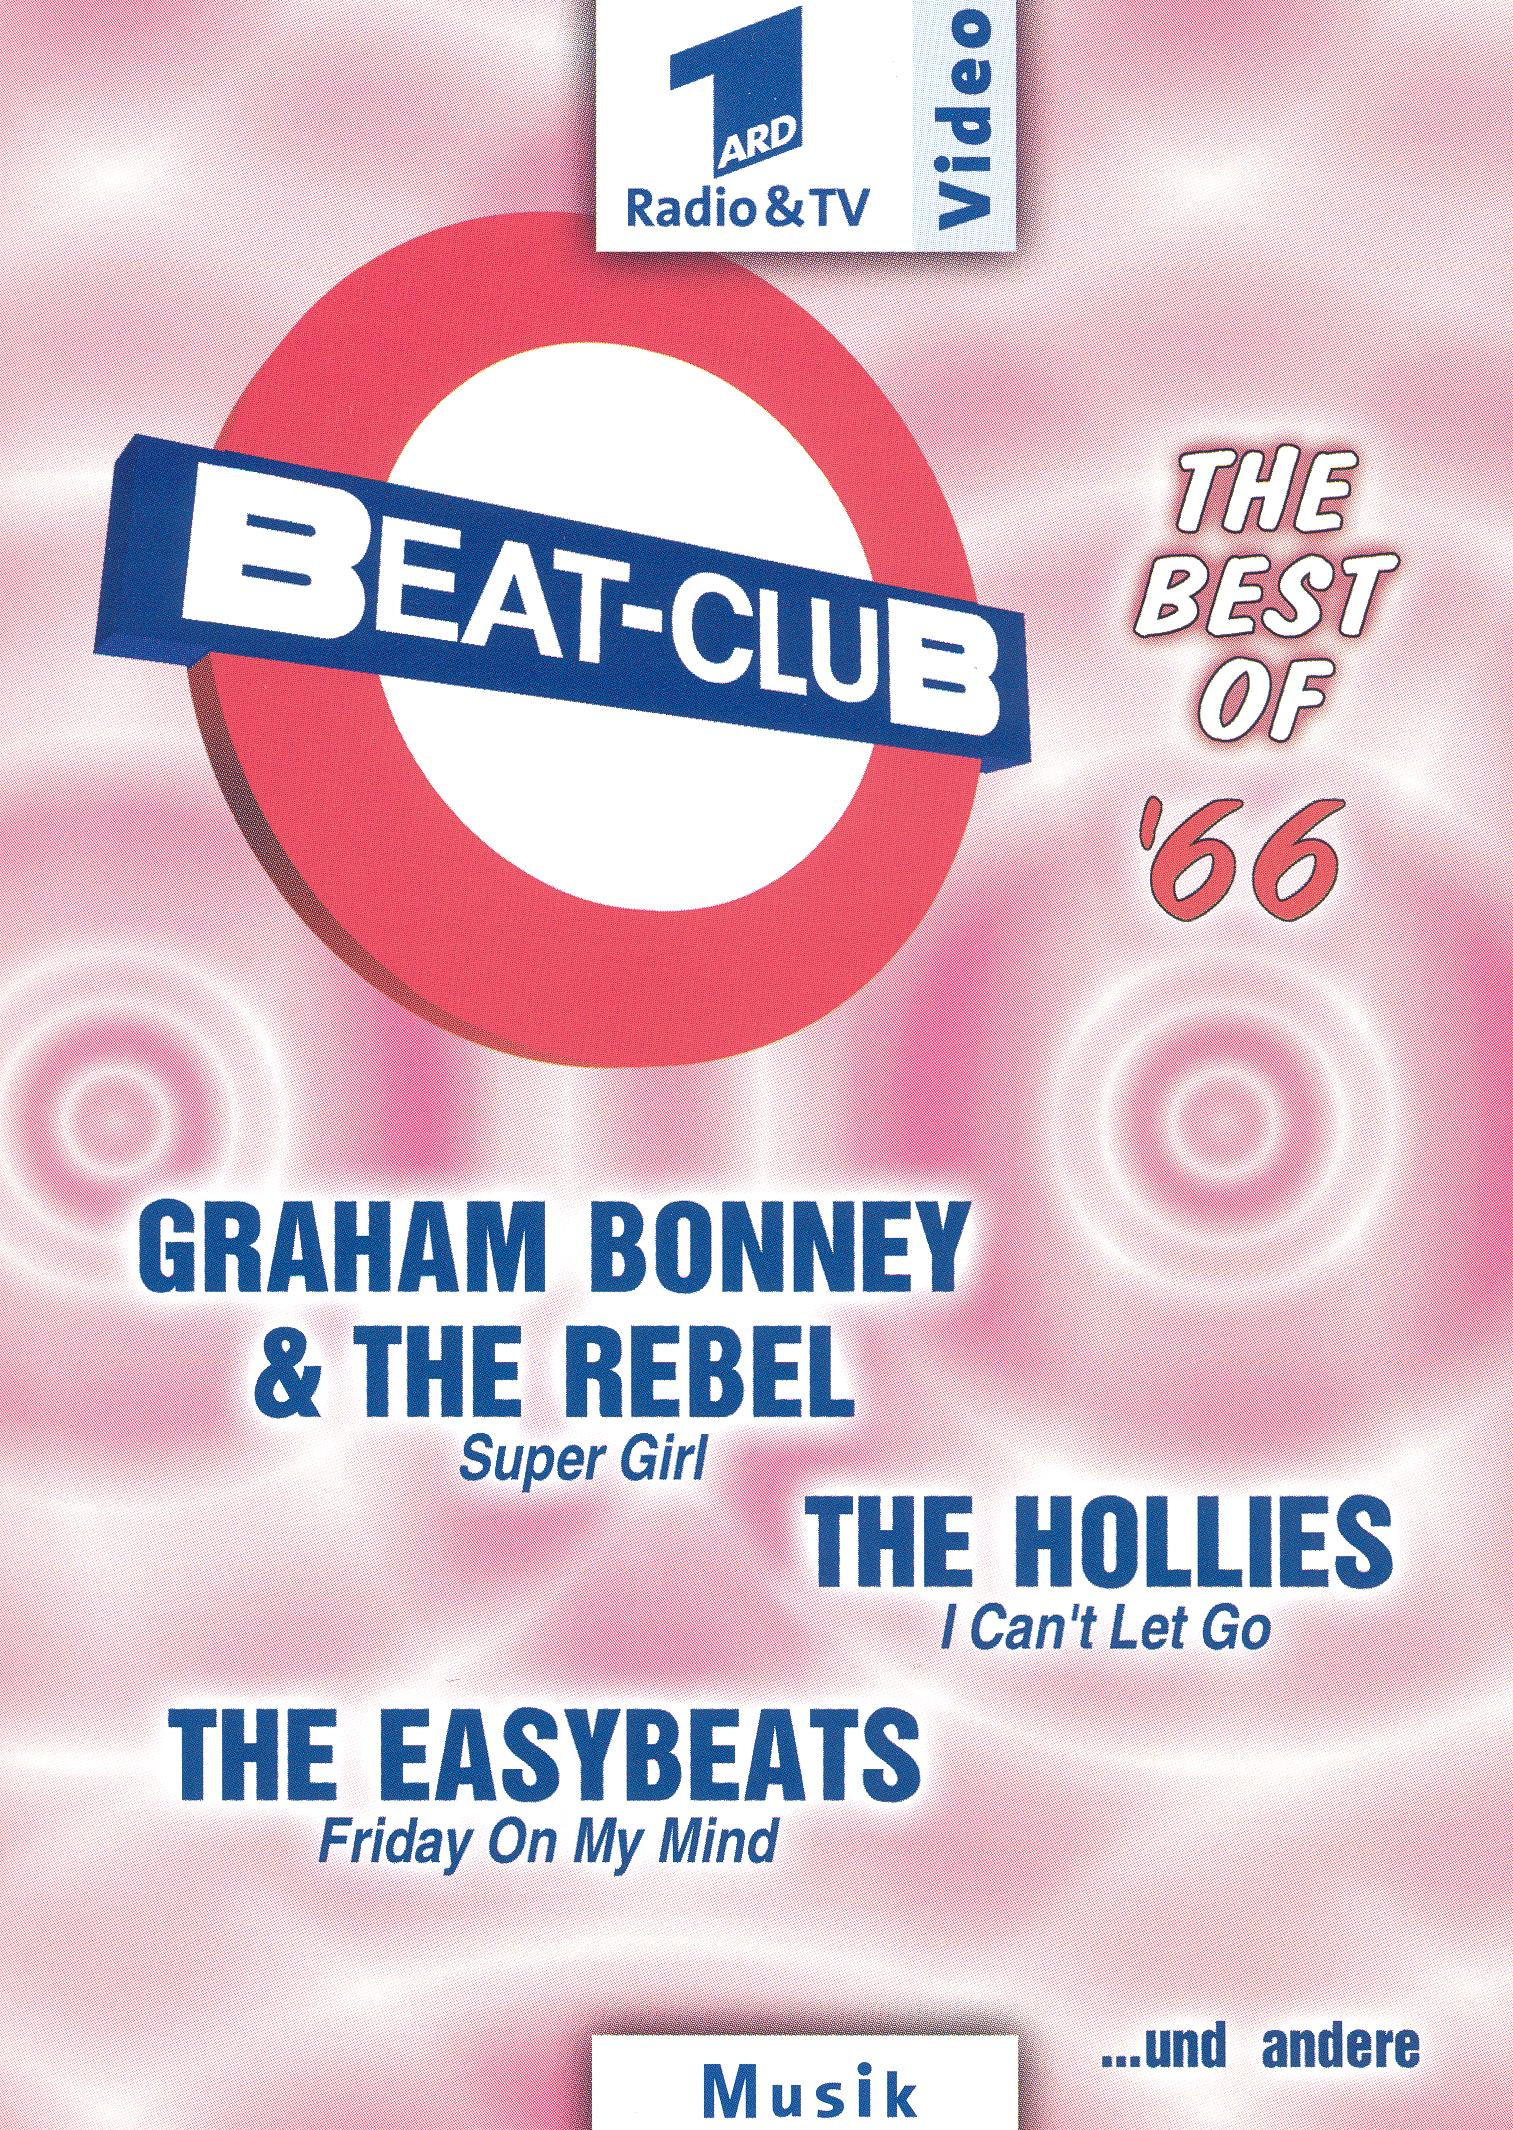 The Beat-Club: The Best of '66